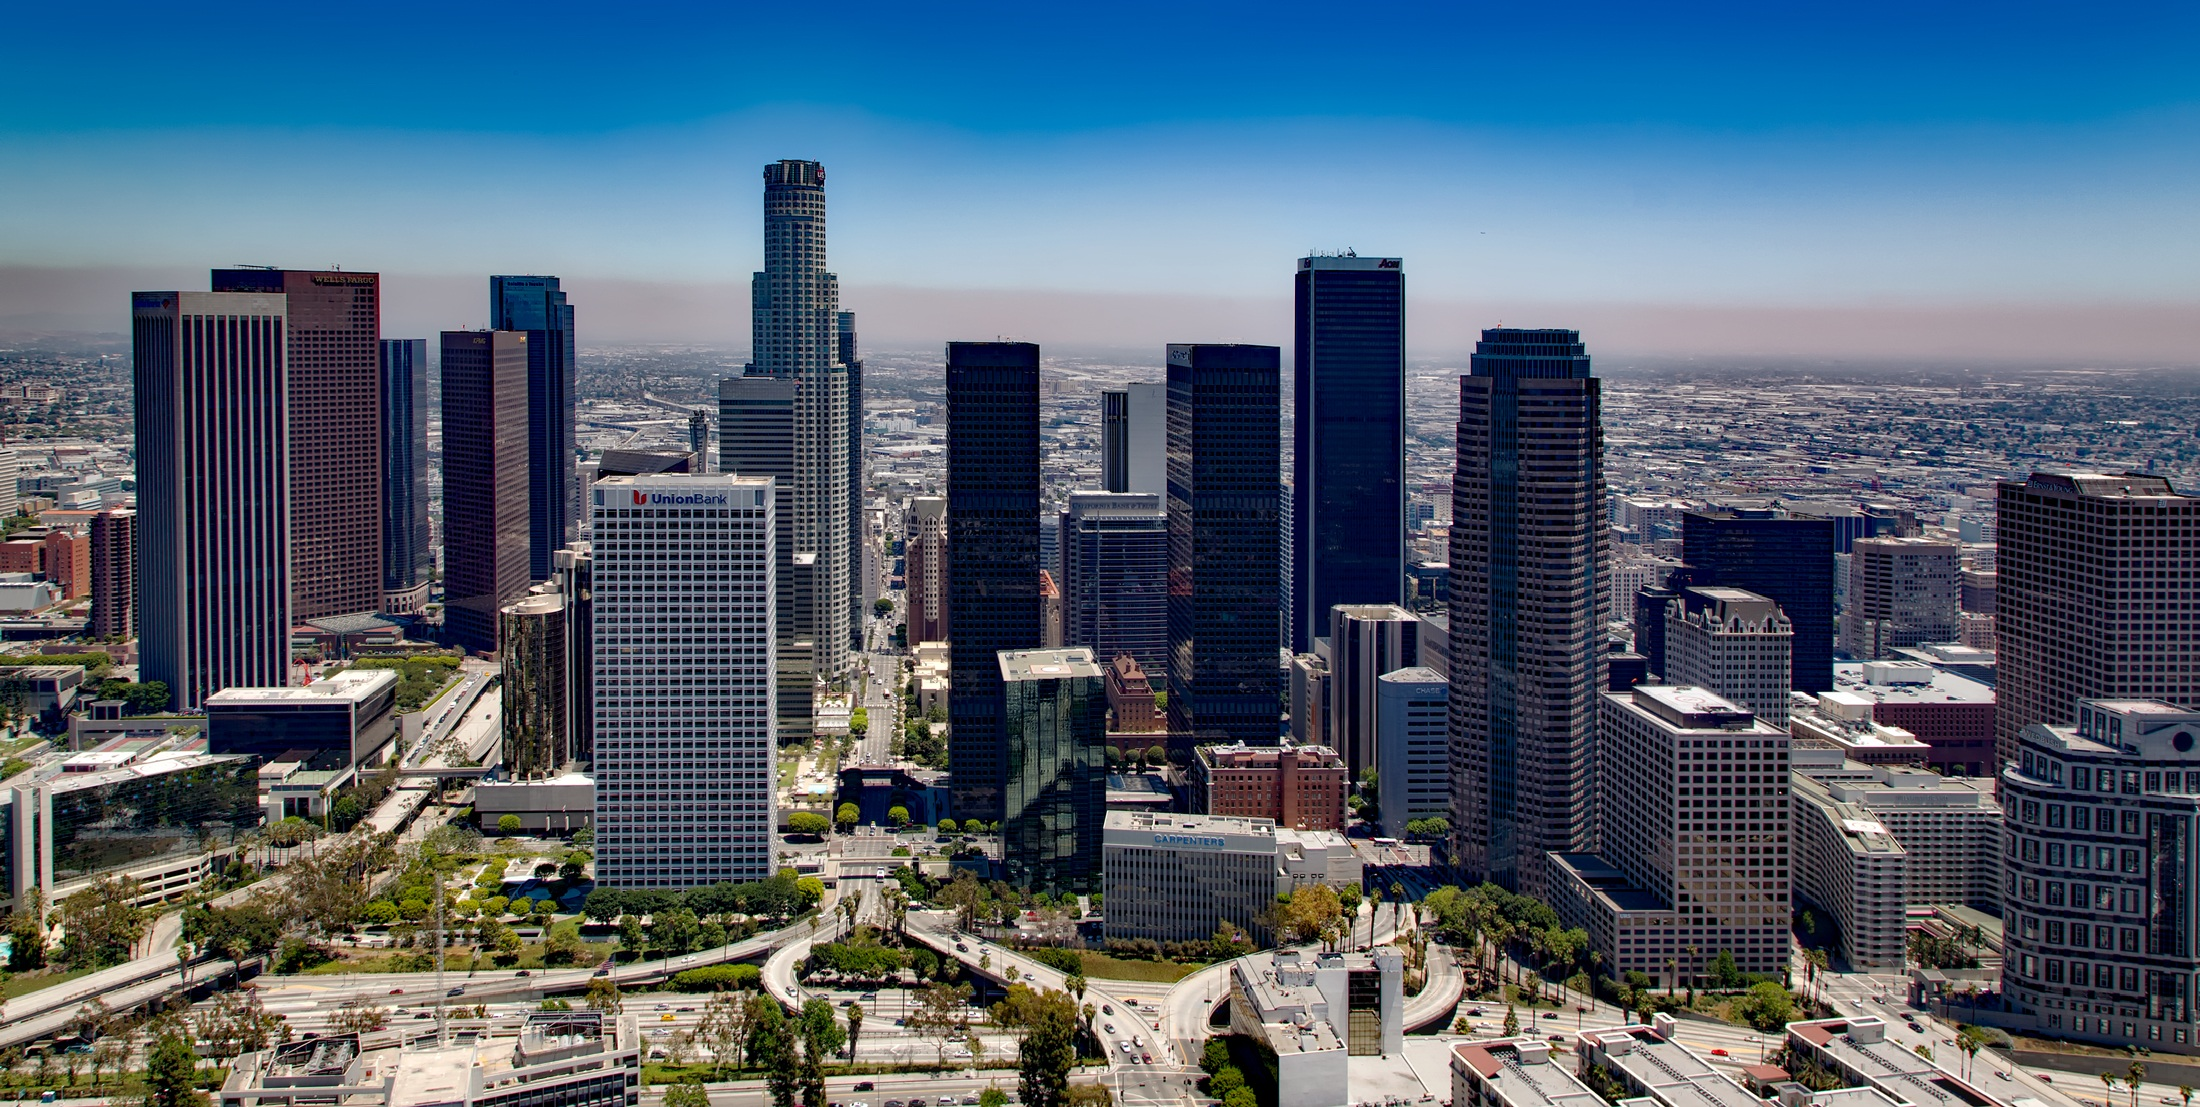 Los Angeles City Scape